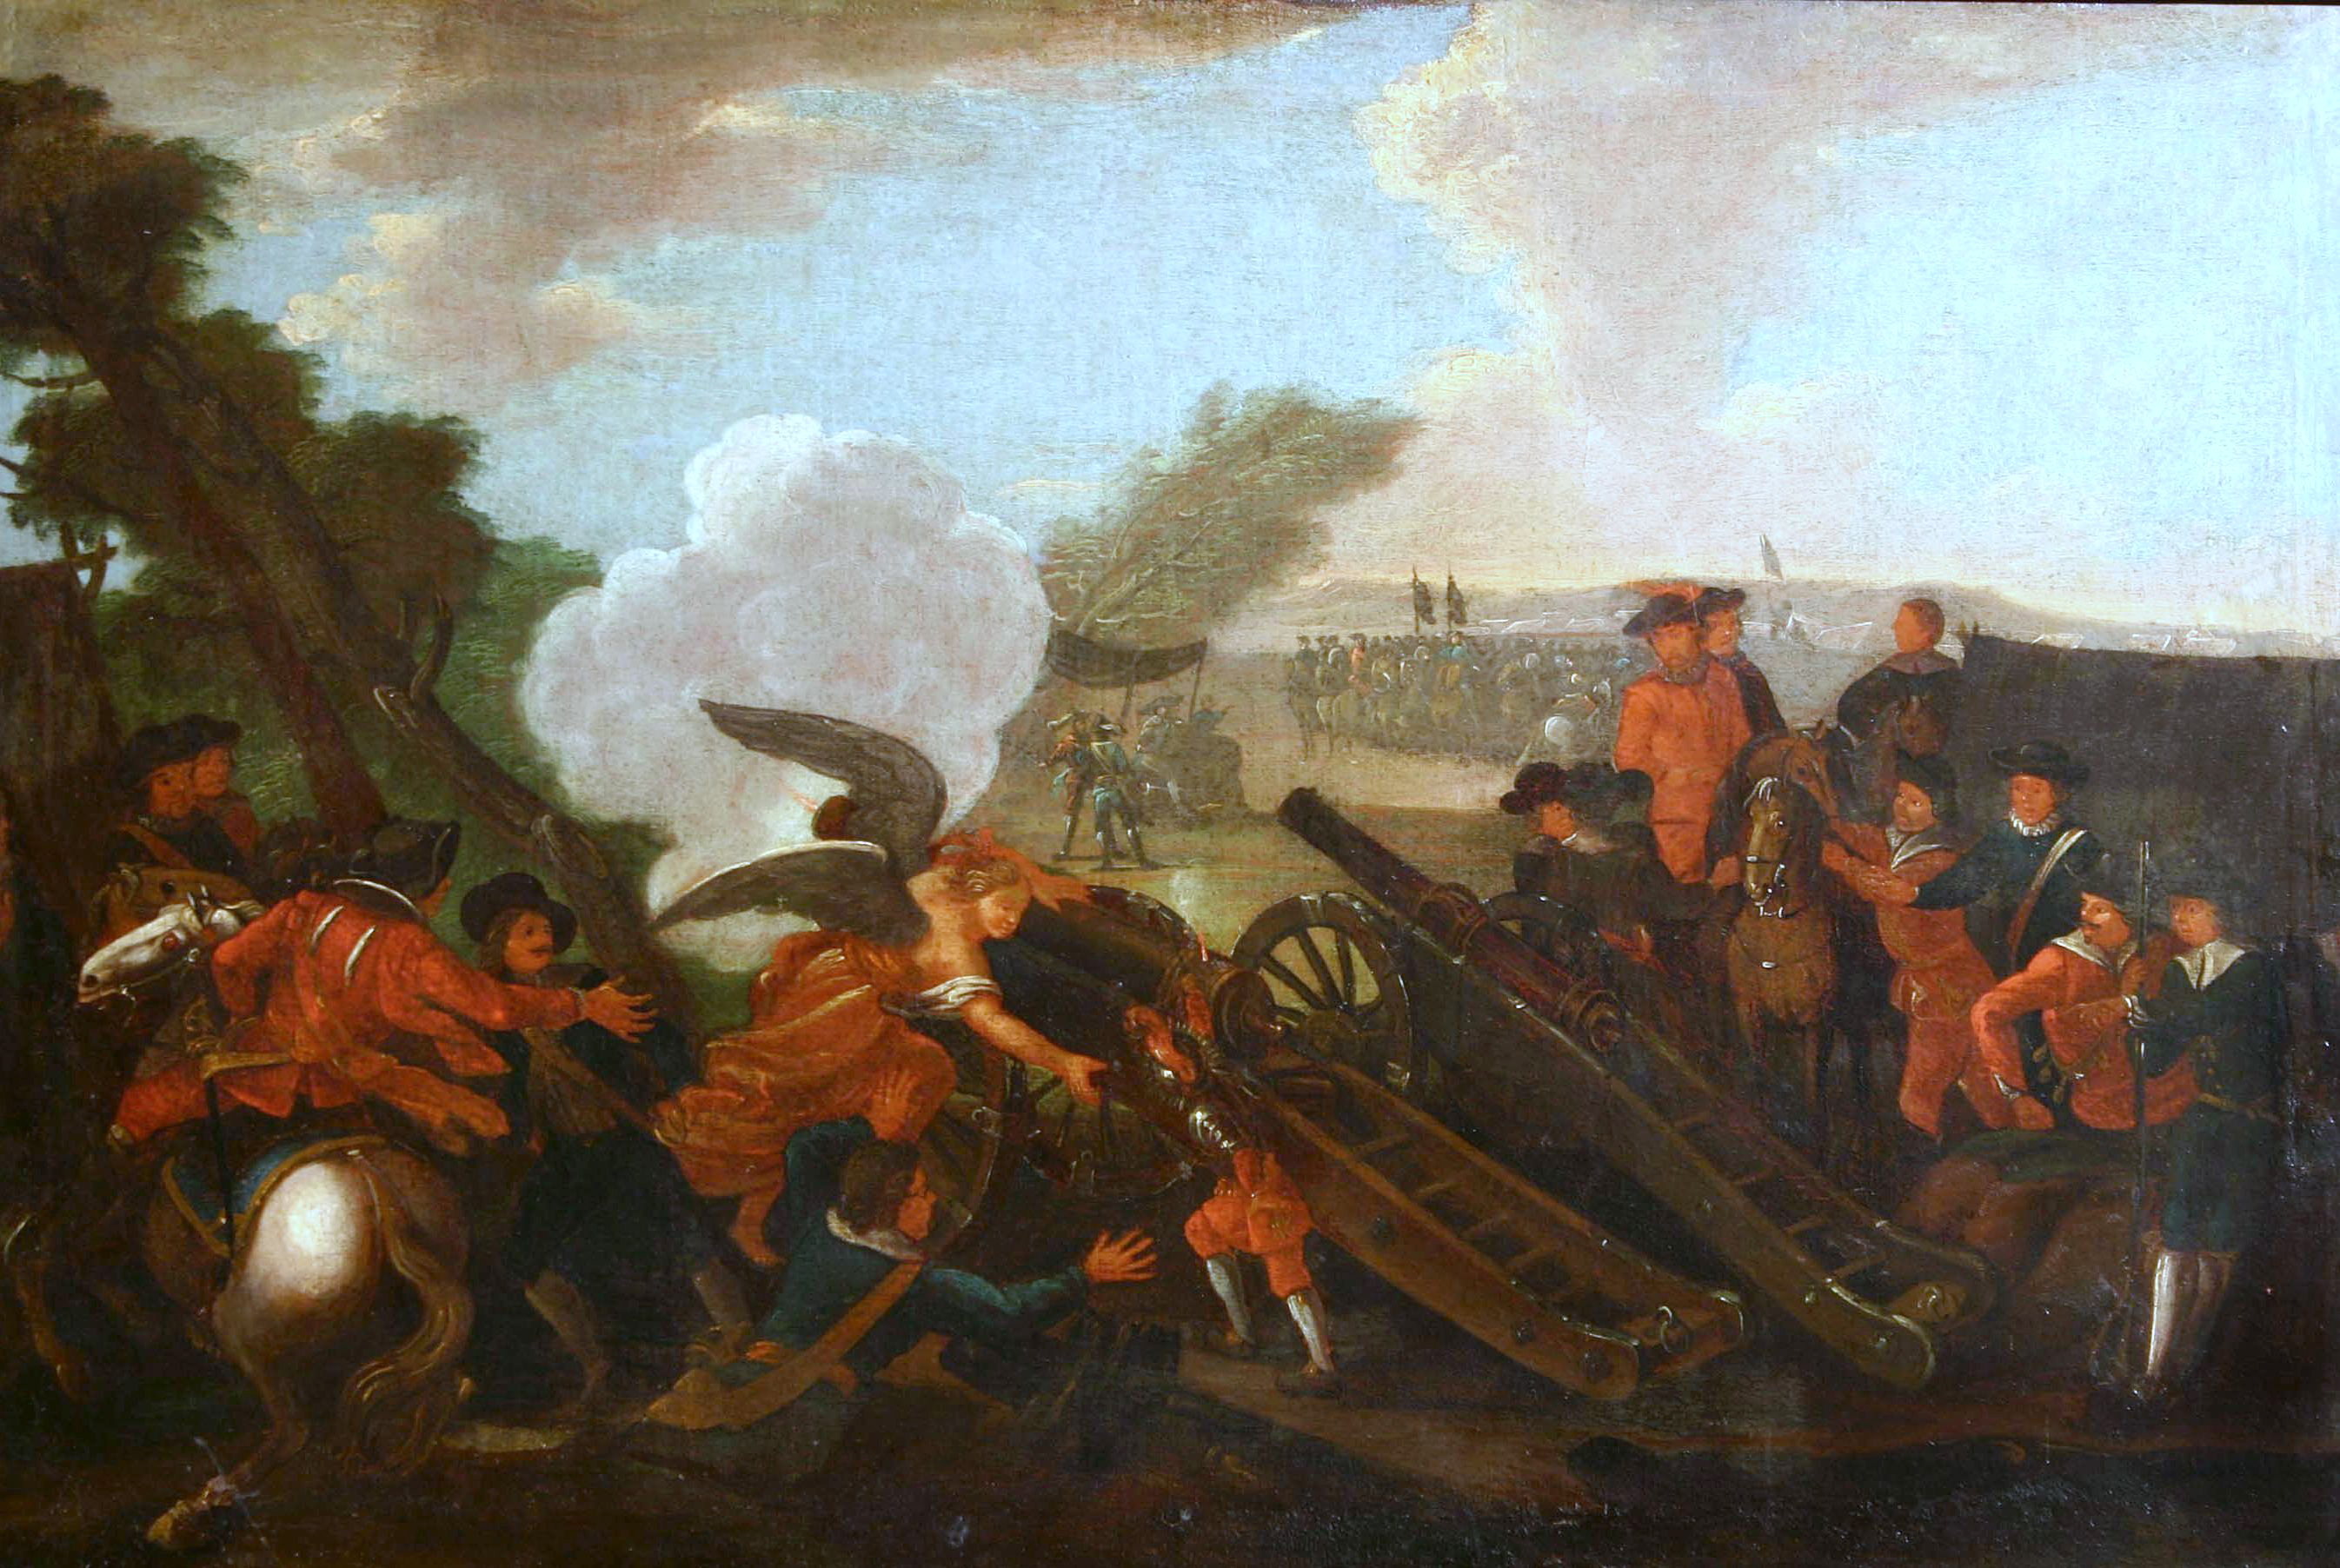 File:Battle of Kliszow 1702.JPG - Wikipedia, the free encyclopedia